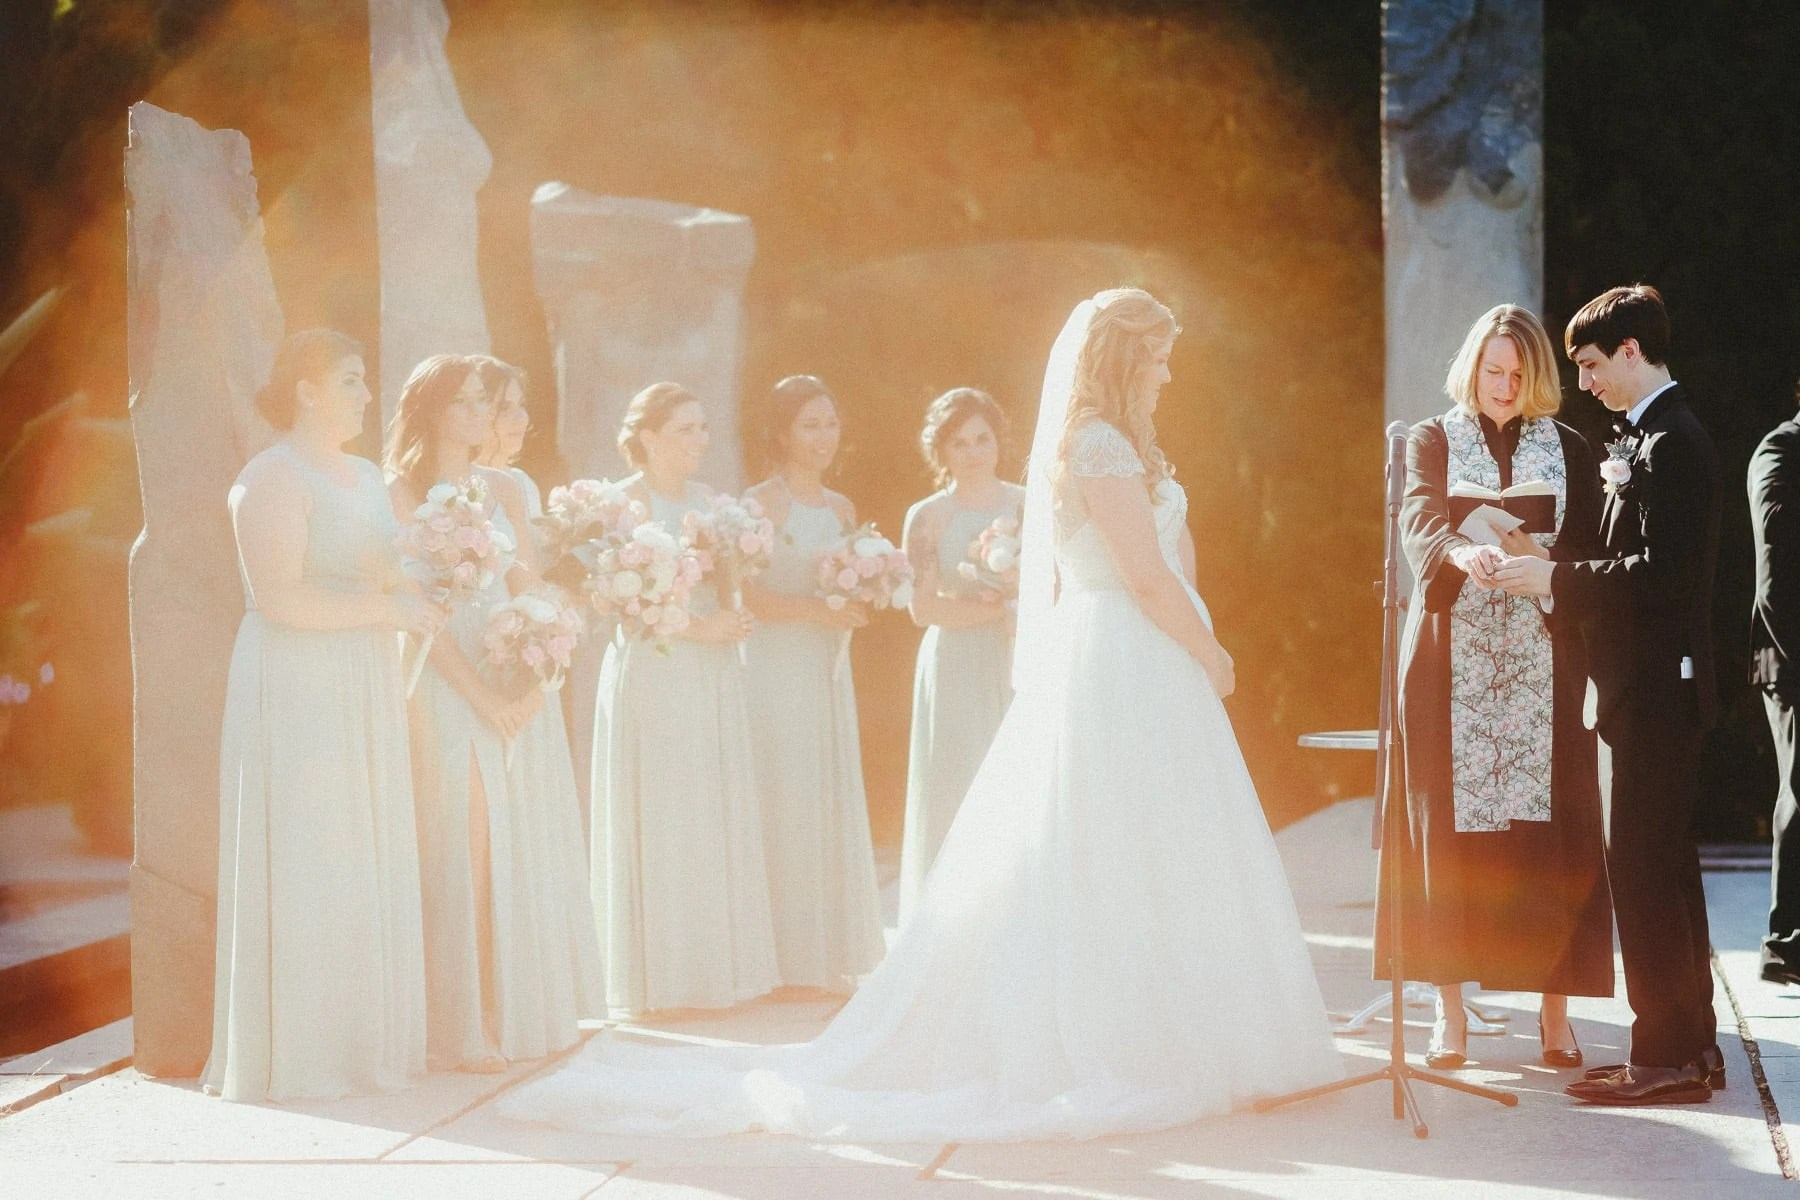 Wedding ceremony at the Nine Muses location